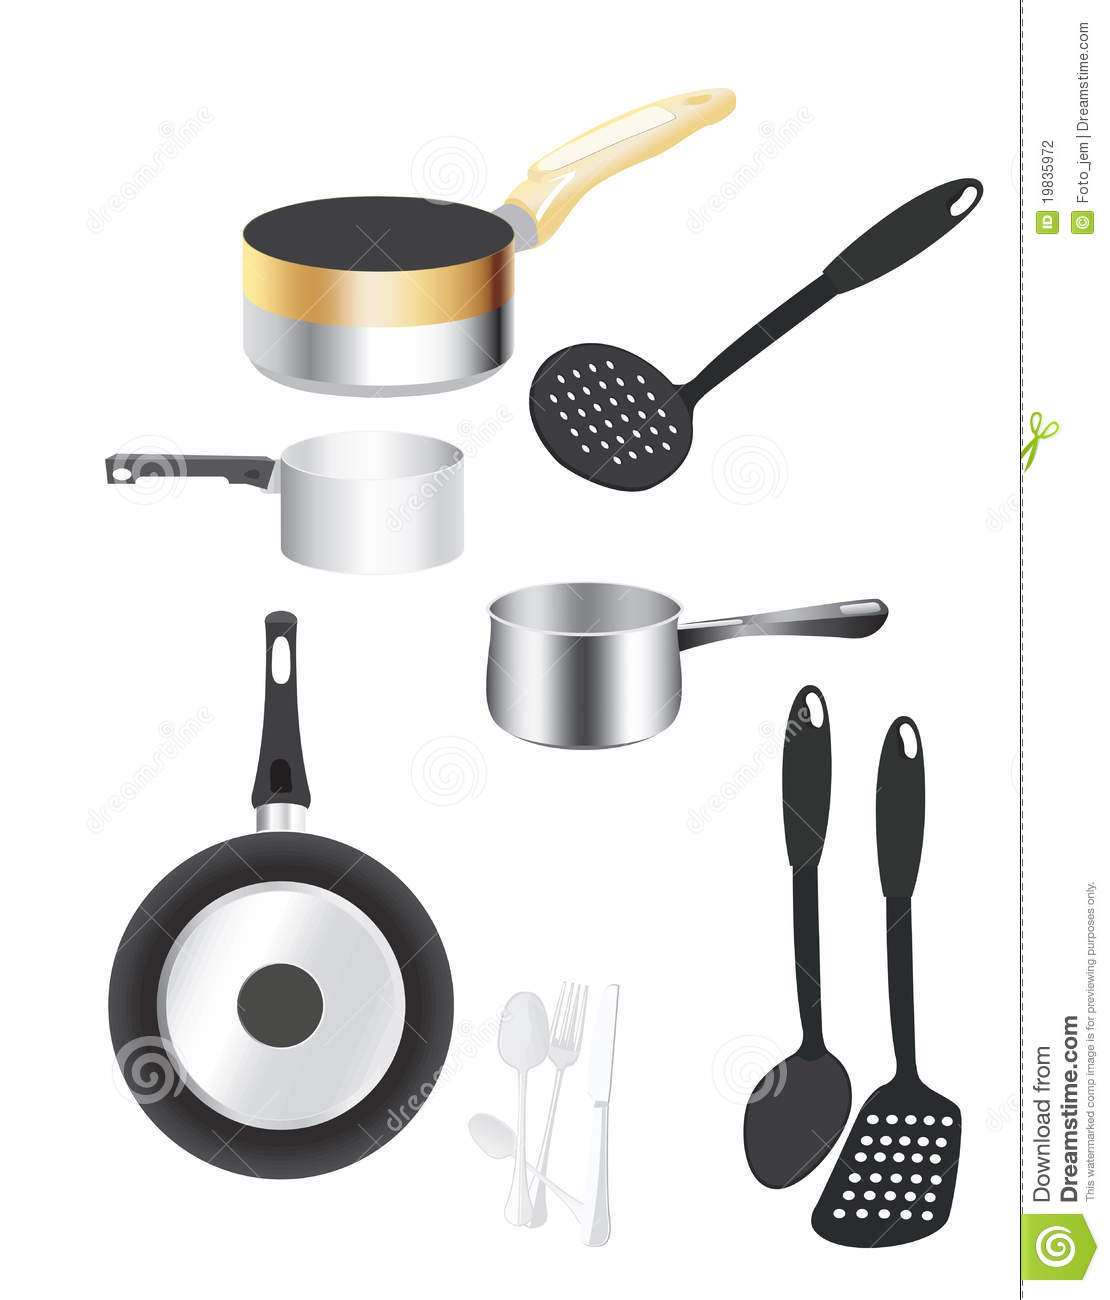 Kitchen Tools Photography - photo#48